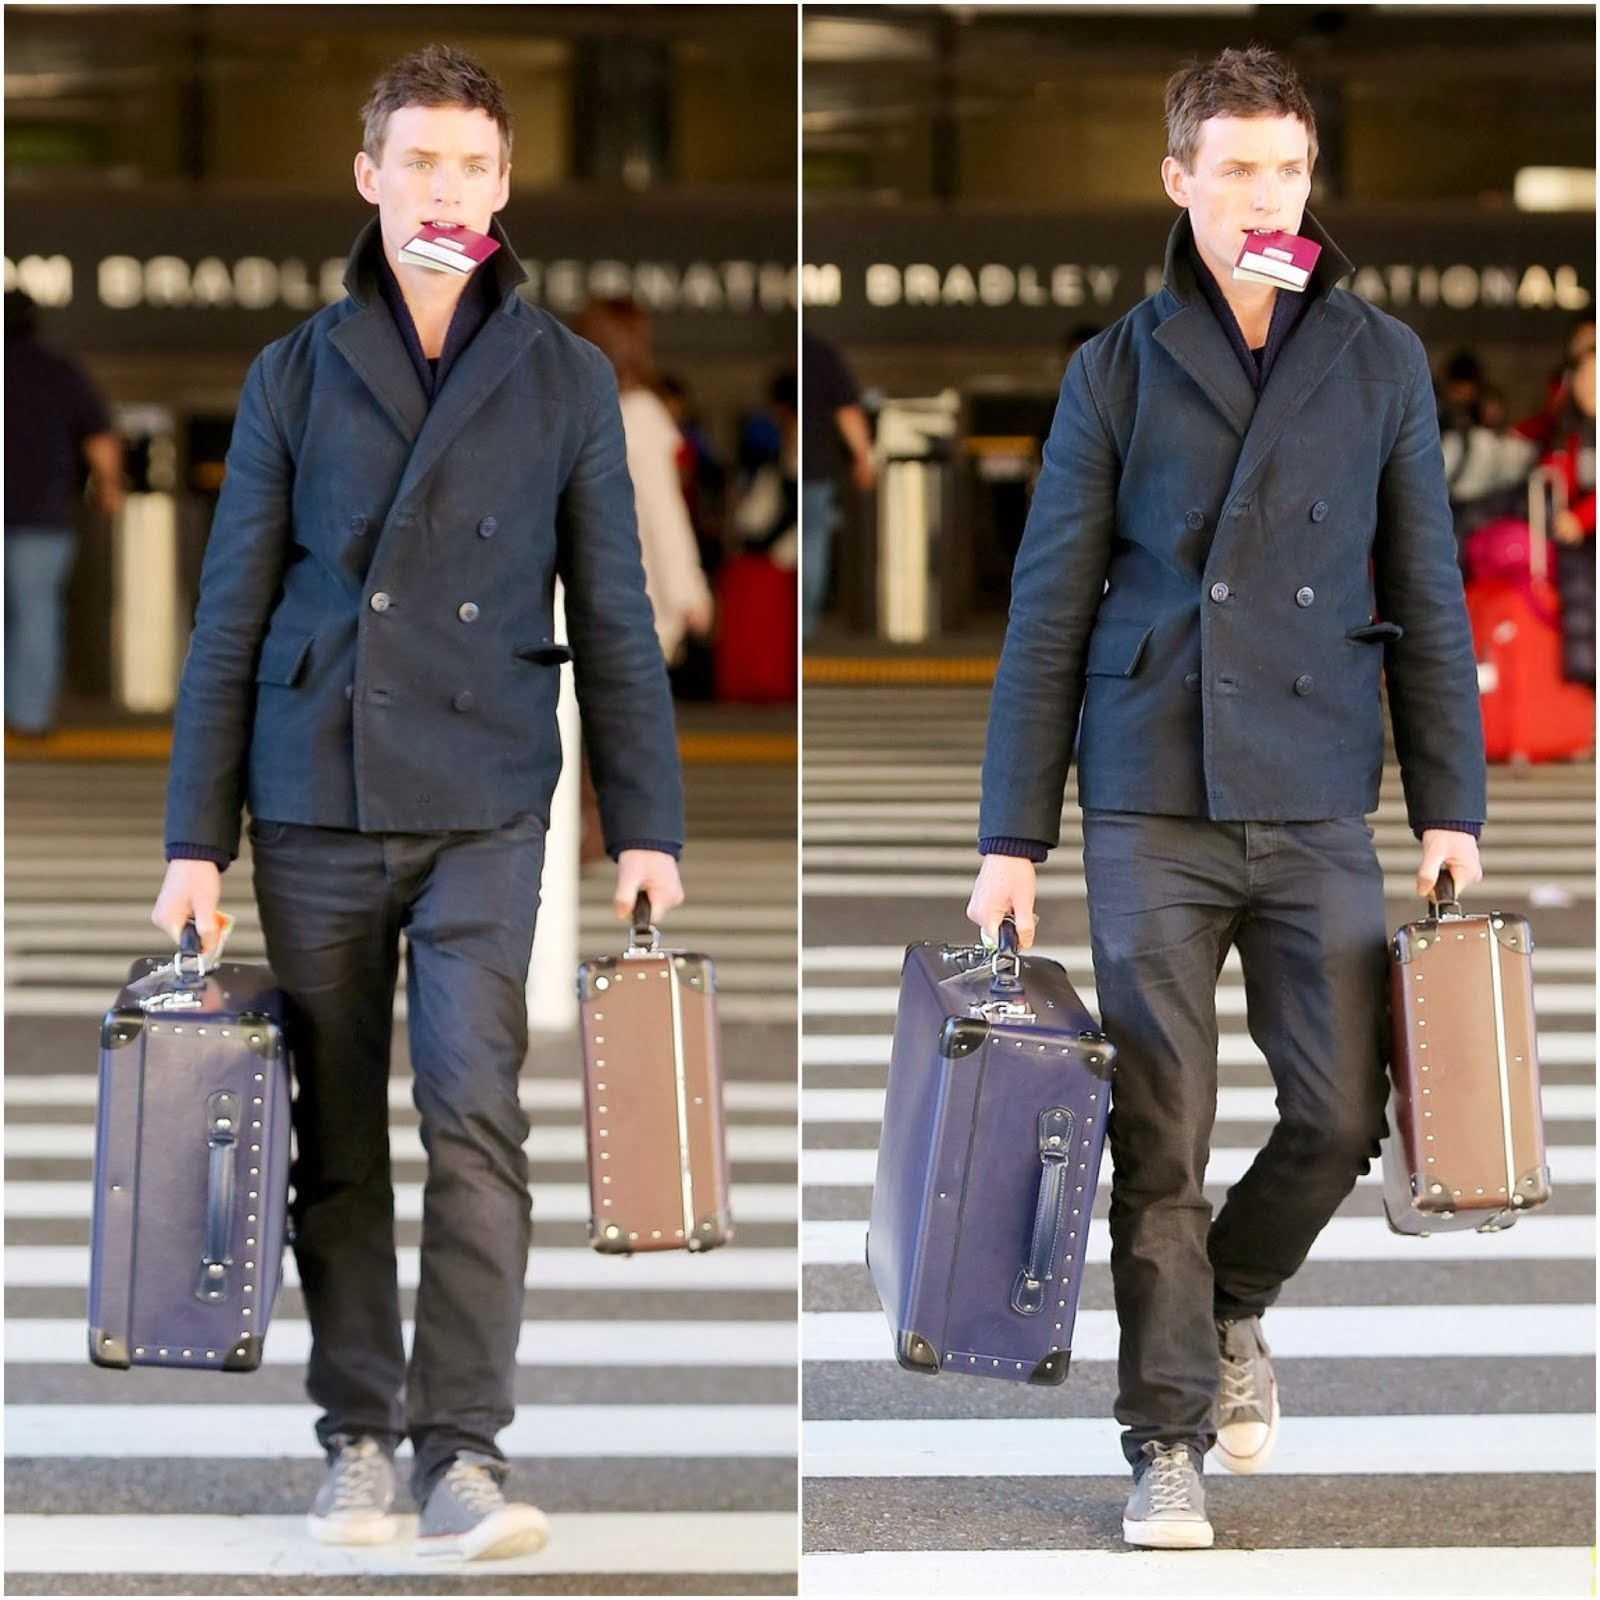 Eddie Redmayne and his Globe-Trotter luggages - Los Angeles International Airport